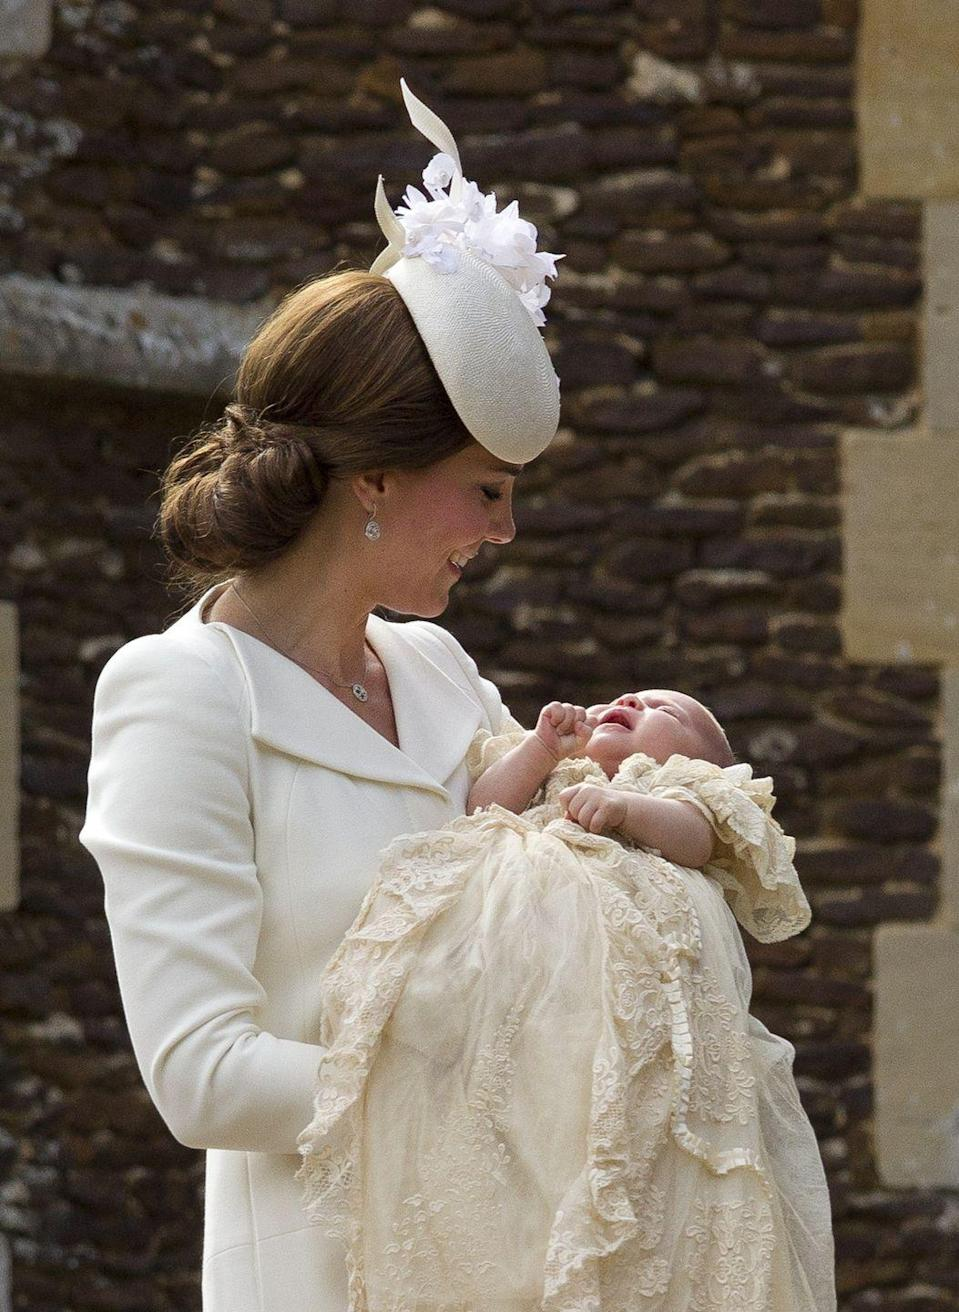 """<p>The palace broke with tradition again by announcing the news of the birth in a <a href=""""https://twitter.com/KensingtonRoyal/status/594443545118924800"""" rel=""""nofollow noopener"""" target=""""_blank"""" data-ylk=""""slk:tweet"""" class=""""link rapid-noclick-resp"""">tweet</a>: """"Her Royal Highness, The Duchess of Cambridge was safely delivered of a daughter at 8.34 a.m. Her Royal Highness and her child are both doing well.""""</p><p><em>Left: </em>The Duchess of Cambridge holds Princess Charlotte at her christening on July 5, 2015.<br></p><p>More: <a href=""""https://www.townandcountrymag.com/society/tradition/g9570478/princess-charlotte-photos-news/"""" rel=""""nofollow noopener"""" target=""""_blank"""" data-ylk=""""slk:Princess Charlotte's Cutest Moments"""" class=""""link rapid-noclick-resp"""">Princess Charlotte's Cutest Moments</a><br></p>"""